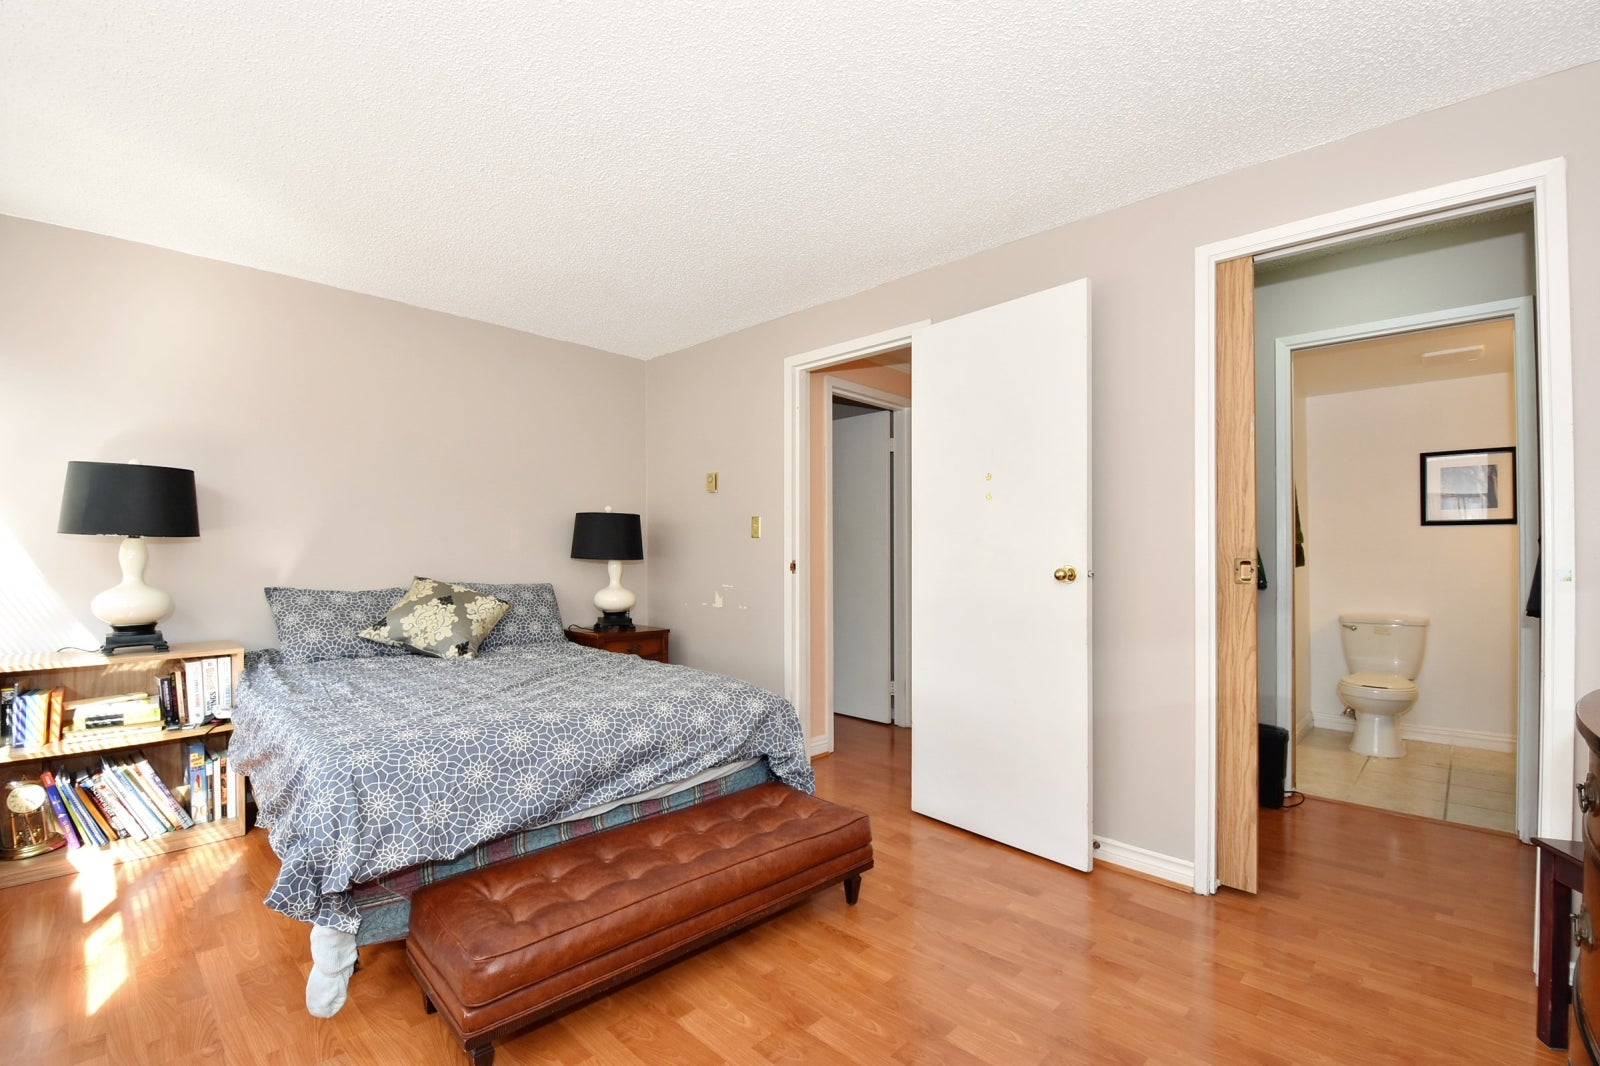 168 7293 MOFFATT ROAD - Brighouse South Apartment/Condo for sale, 2 Bedrooms (R2261480) #15